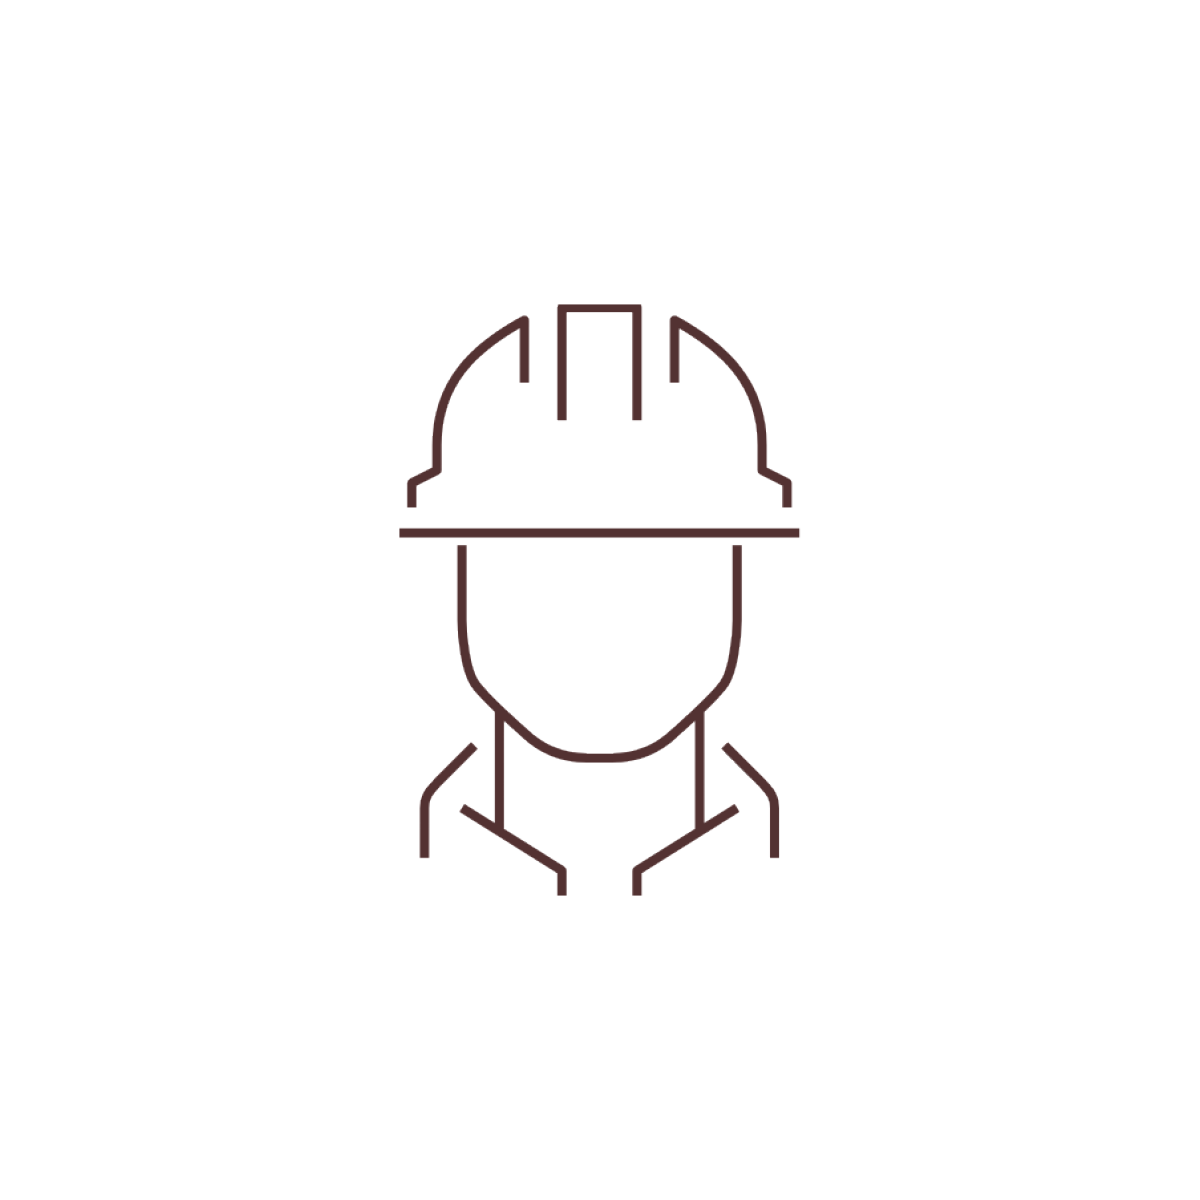 Icon of the engineering team of Cermer